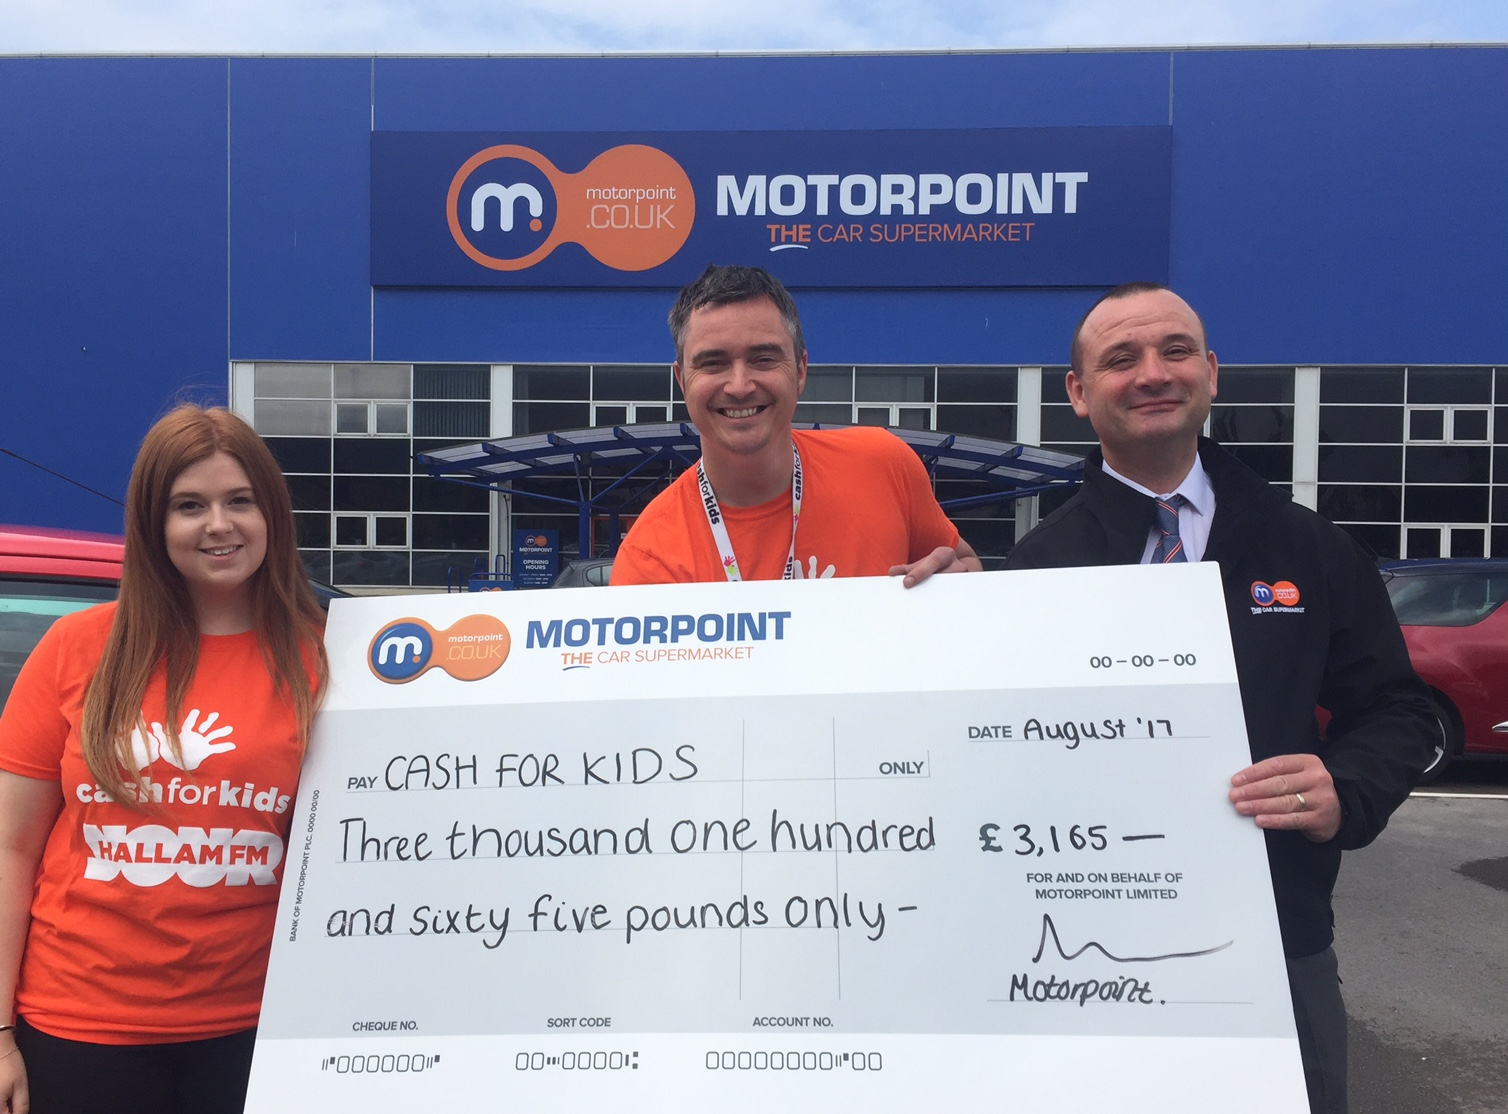 Allan Ogle, Charity Manager for Cash for Kids (centre) collects cheque from Motorpoint following the recent Drive In Cinema event at the company's newest branch